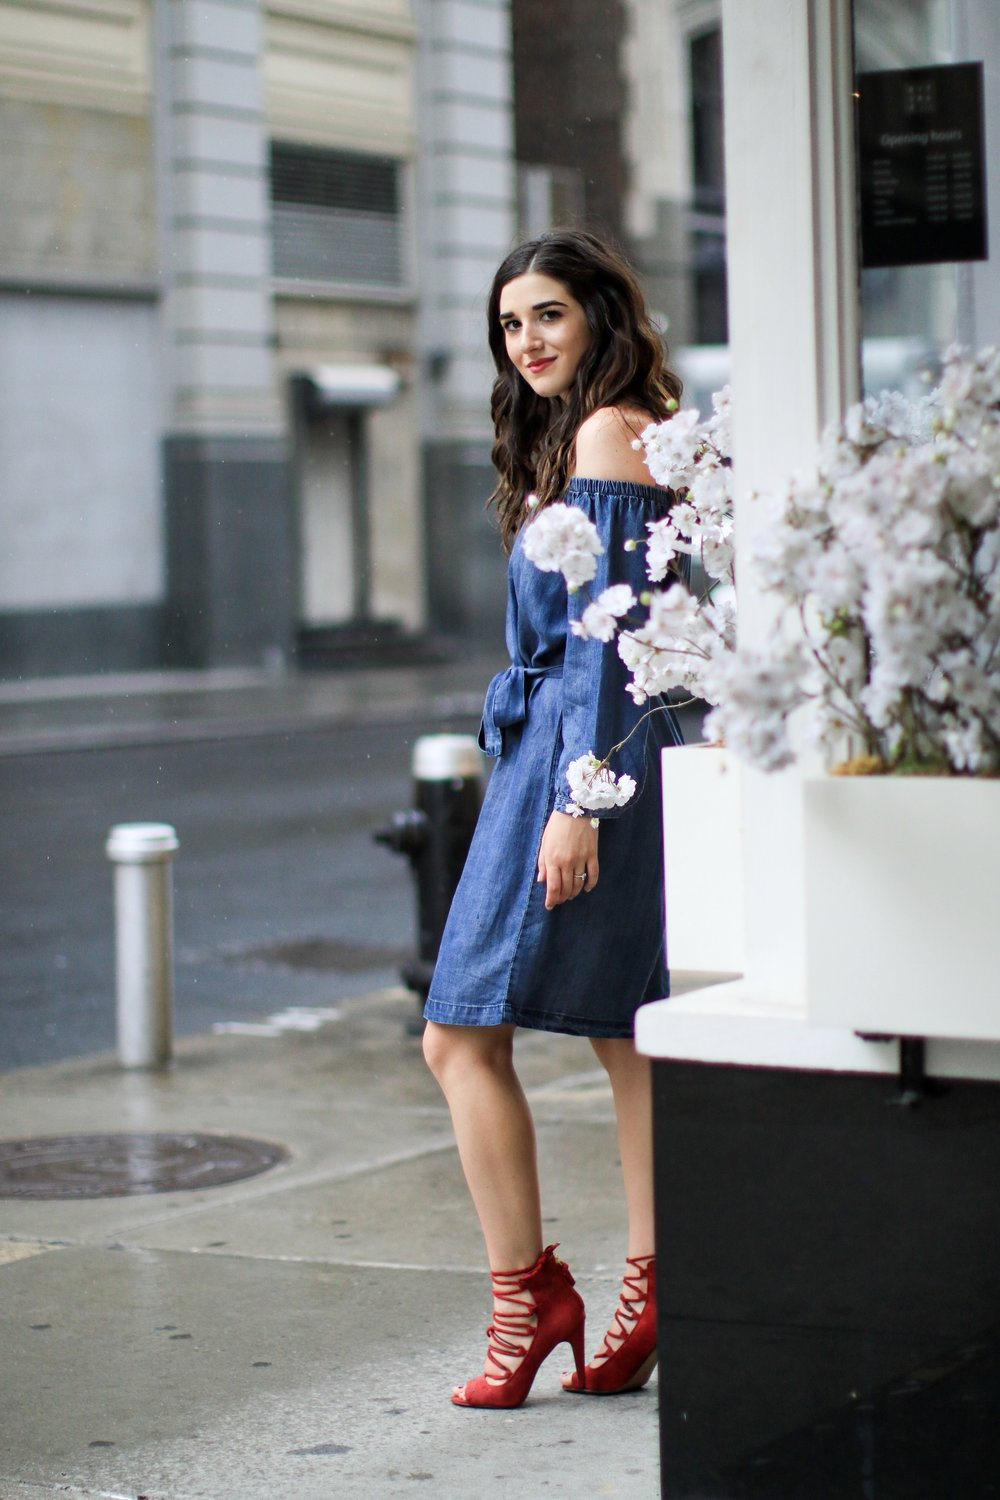 Trescool Chambray Dress 10 Ways To Overcome Writer's Block Esther Santer Fashion Blog NYC Street Style Blogger Outfit OOTD Trendy Denim Red Shoes Lace Up Girl Women Cold Shoulder Summer Beautiful Pretty Shopping French Connection Hair City Photoshoot.JPG